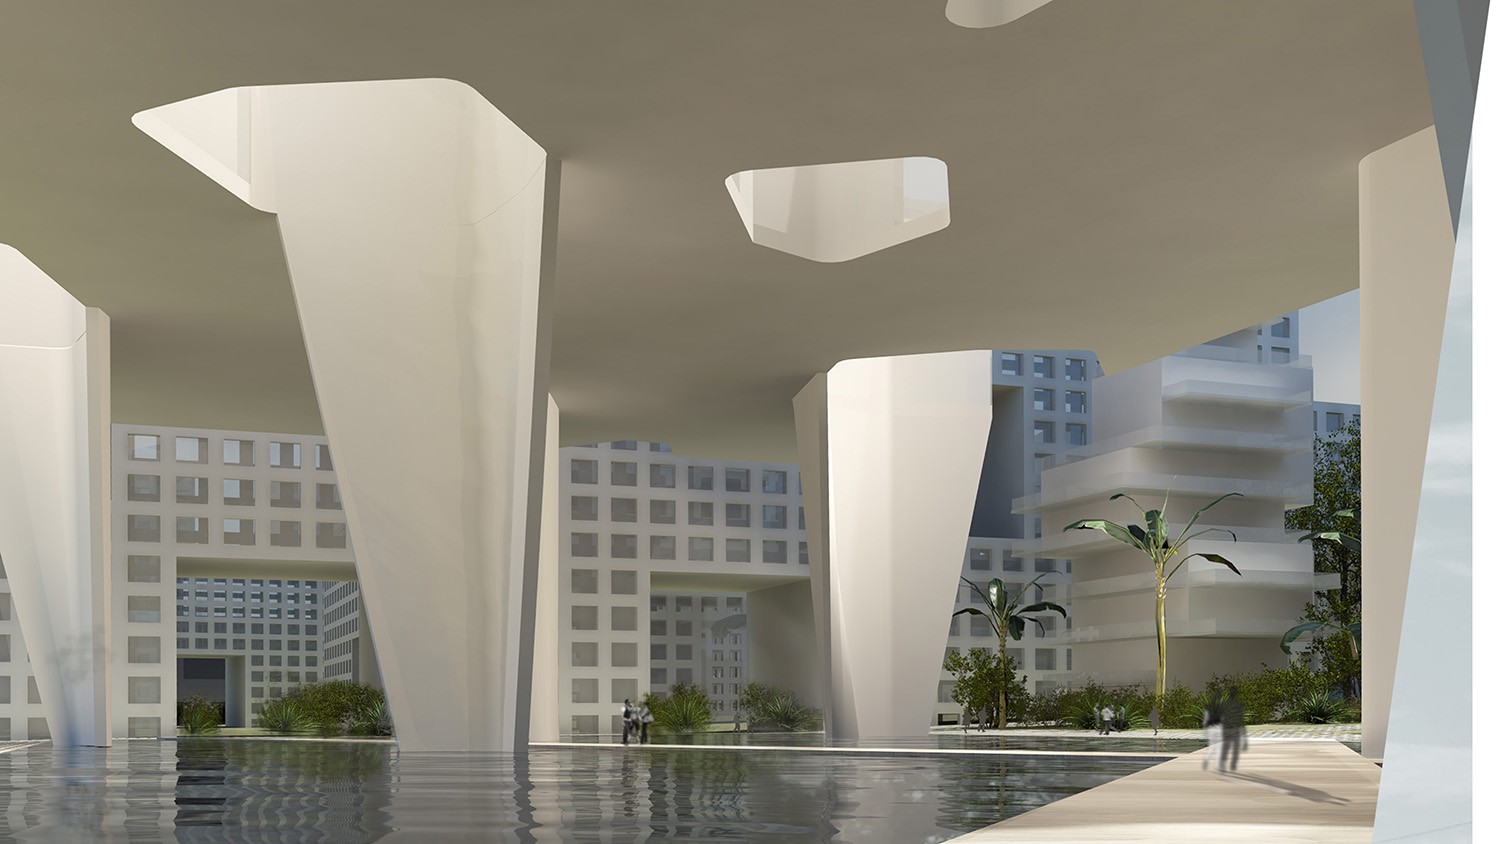 https://s3.us-east-2.amazonaws.com/steven-holl/uploads/projects/project-images/StevenHollArchitects_Dongguan_UnderDrivenVoids_WH.jpg